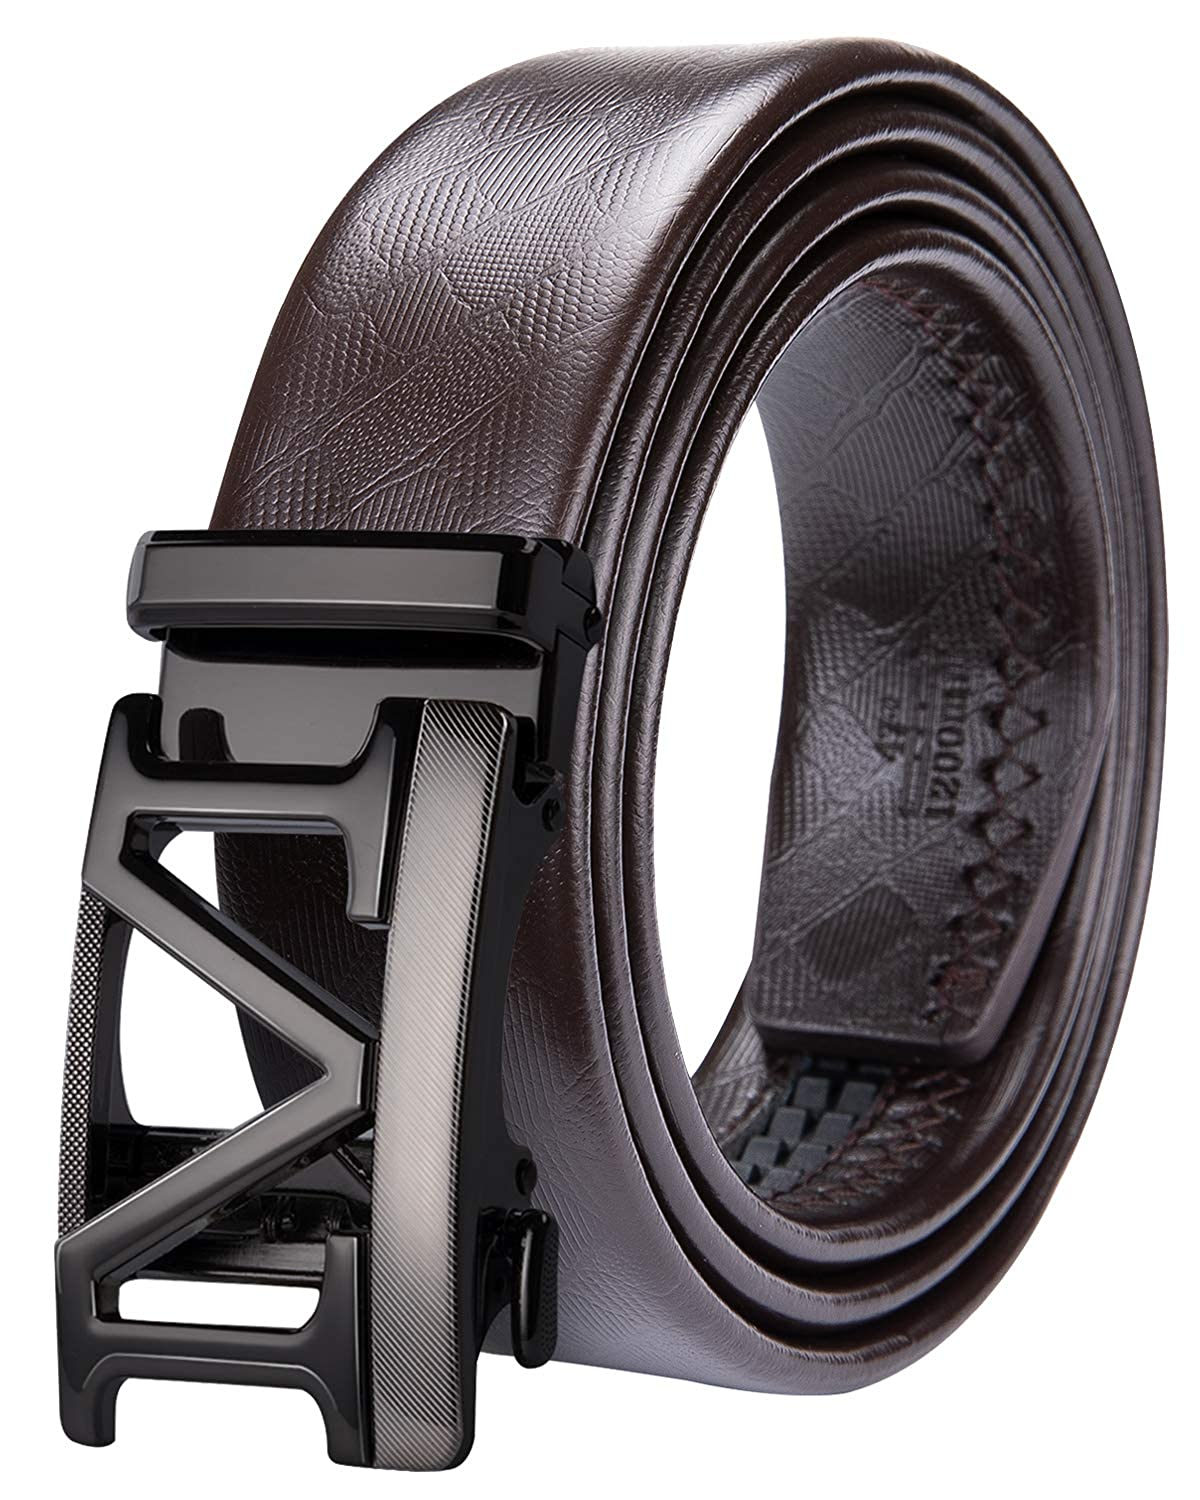 Dubulle Mens Leather Belt Adjustable Slide Buckle Jeans Belt Black Automatic Ratchet Belt for Men